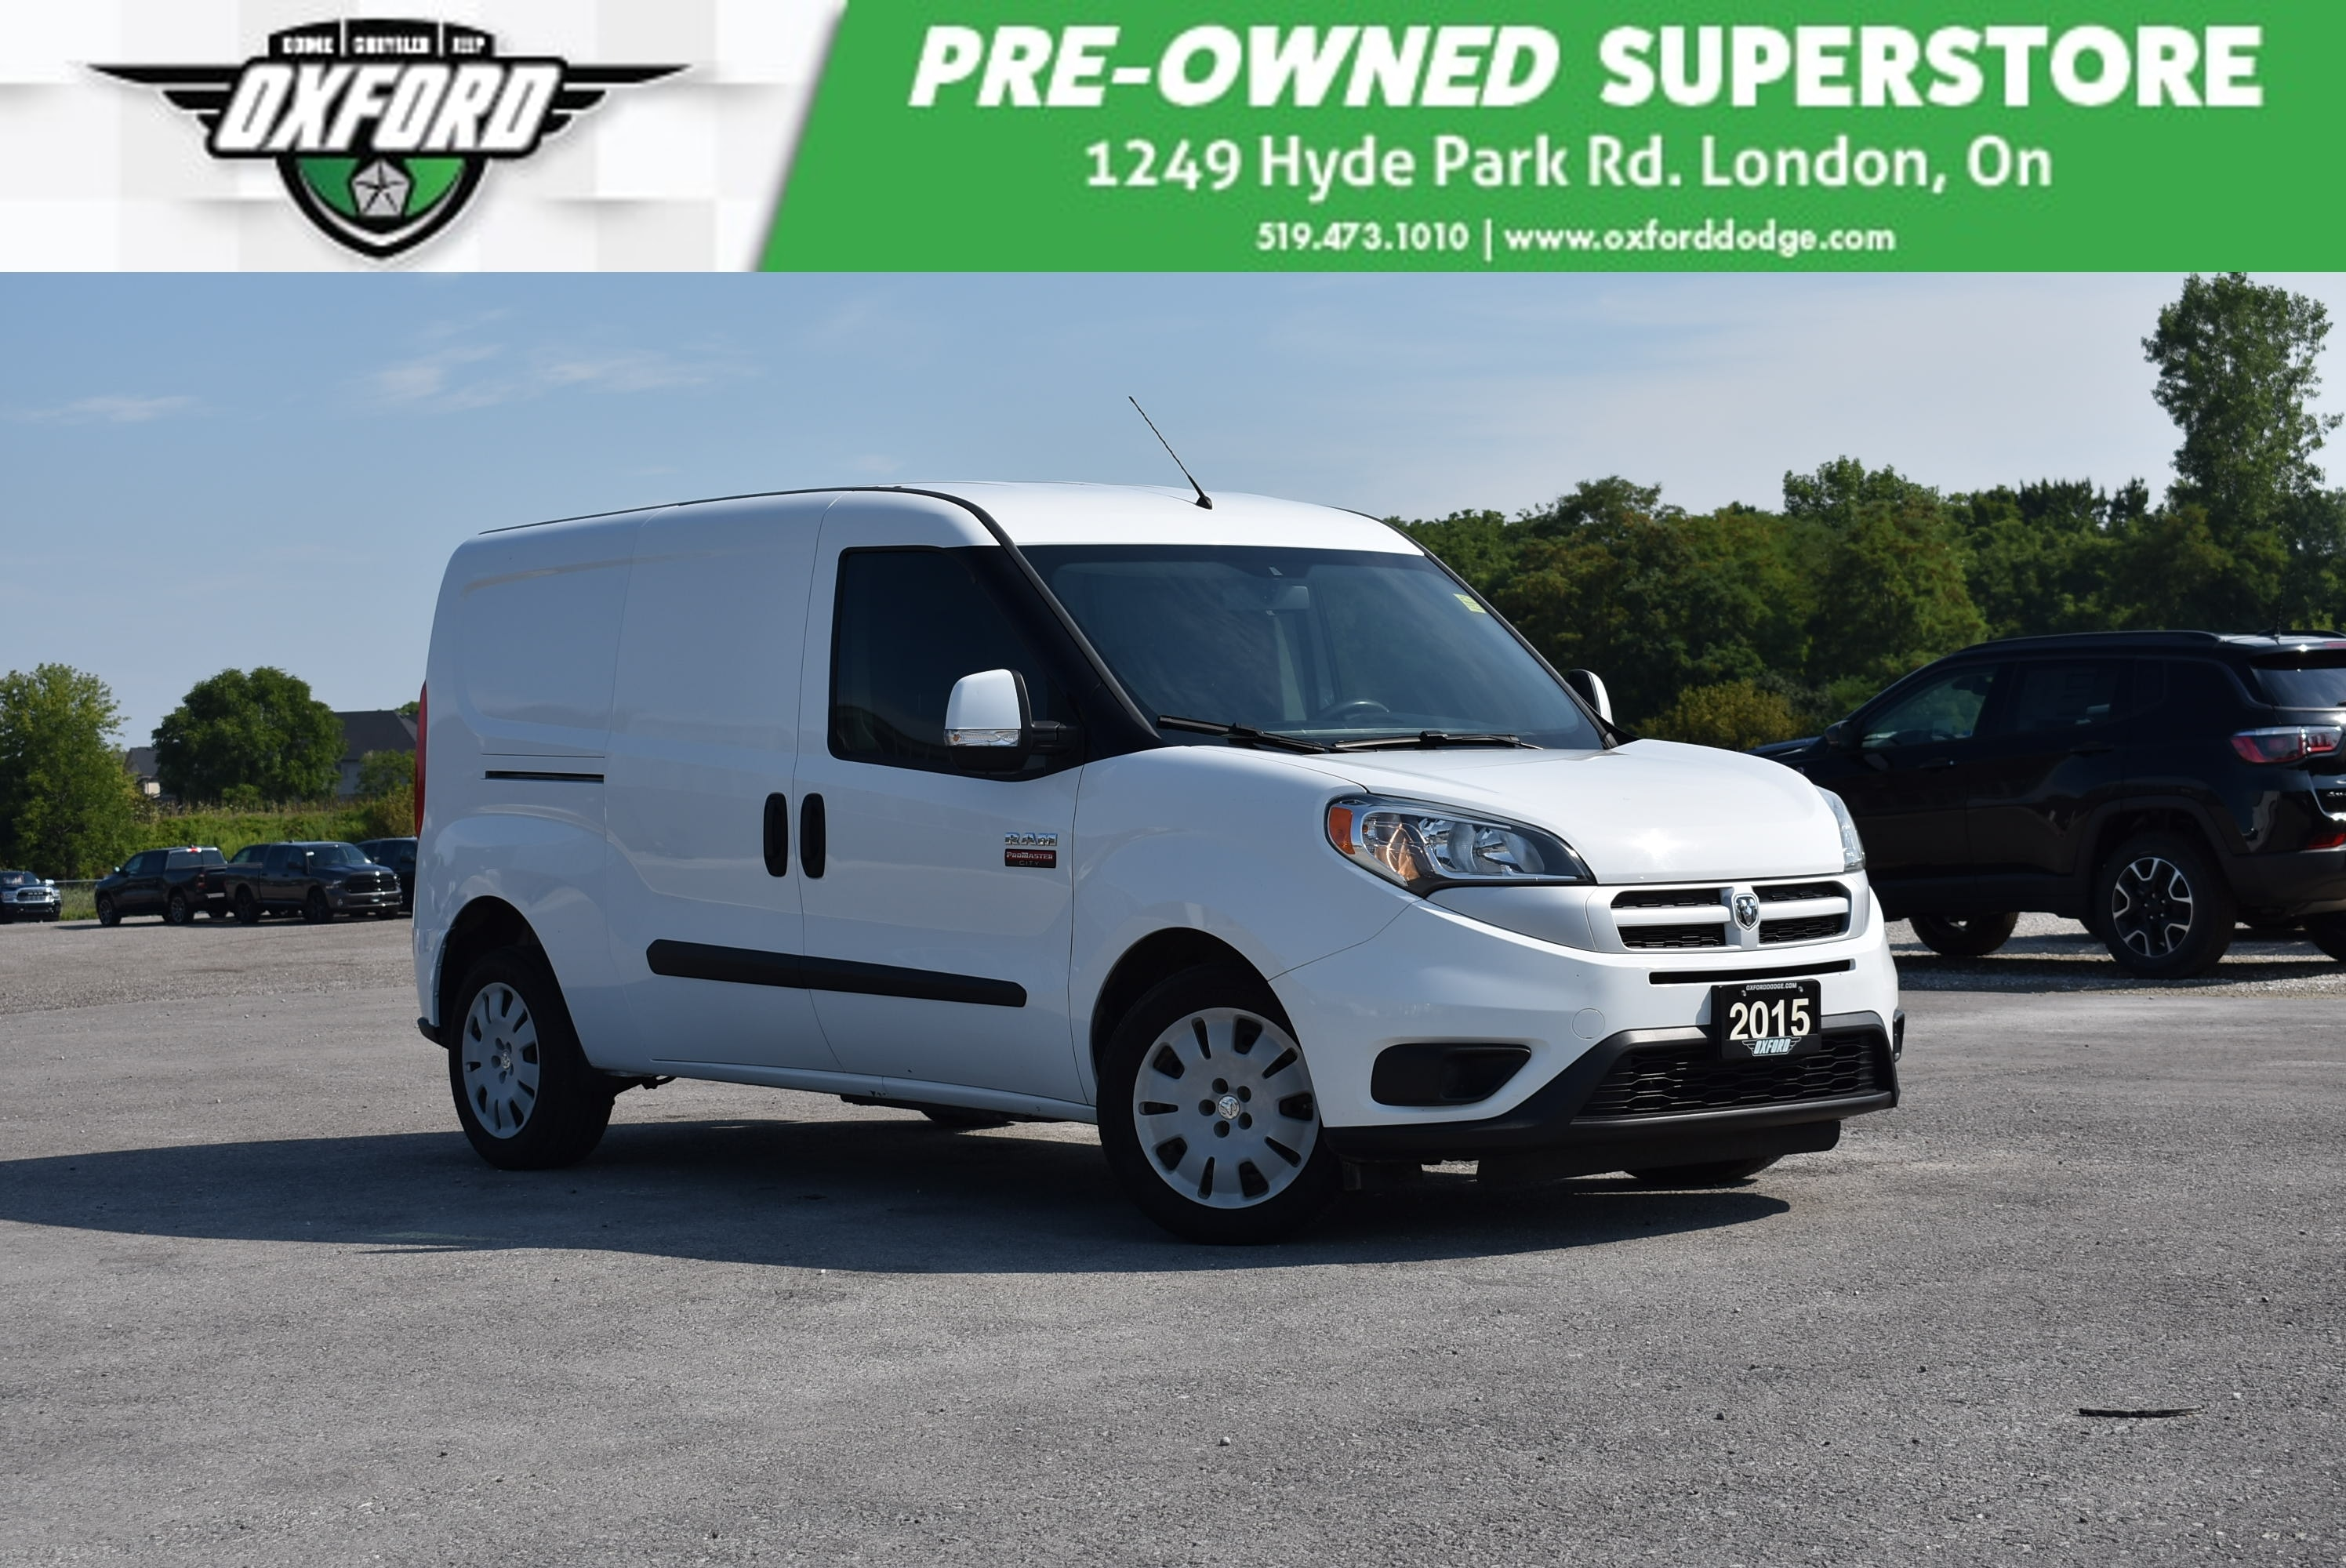 used 2015 Ram ProMaster City car, priced at $16,988